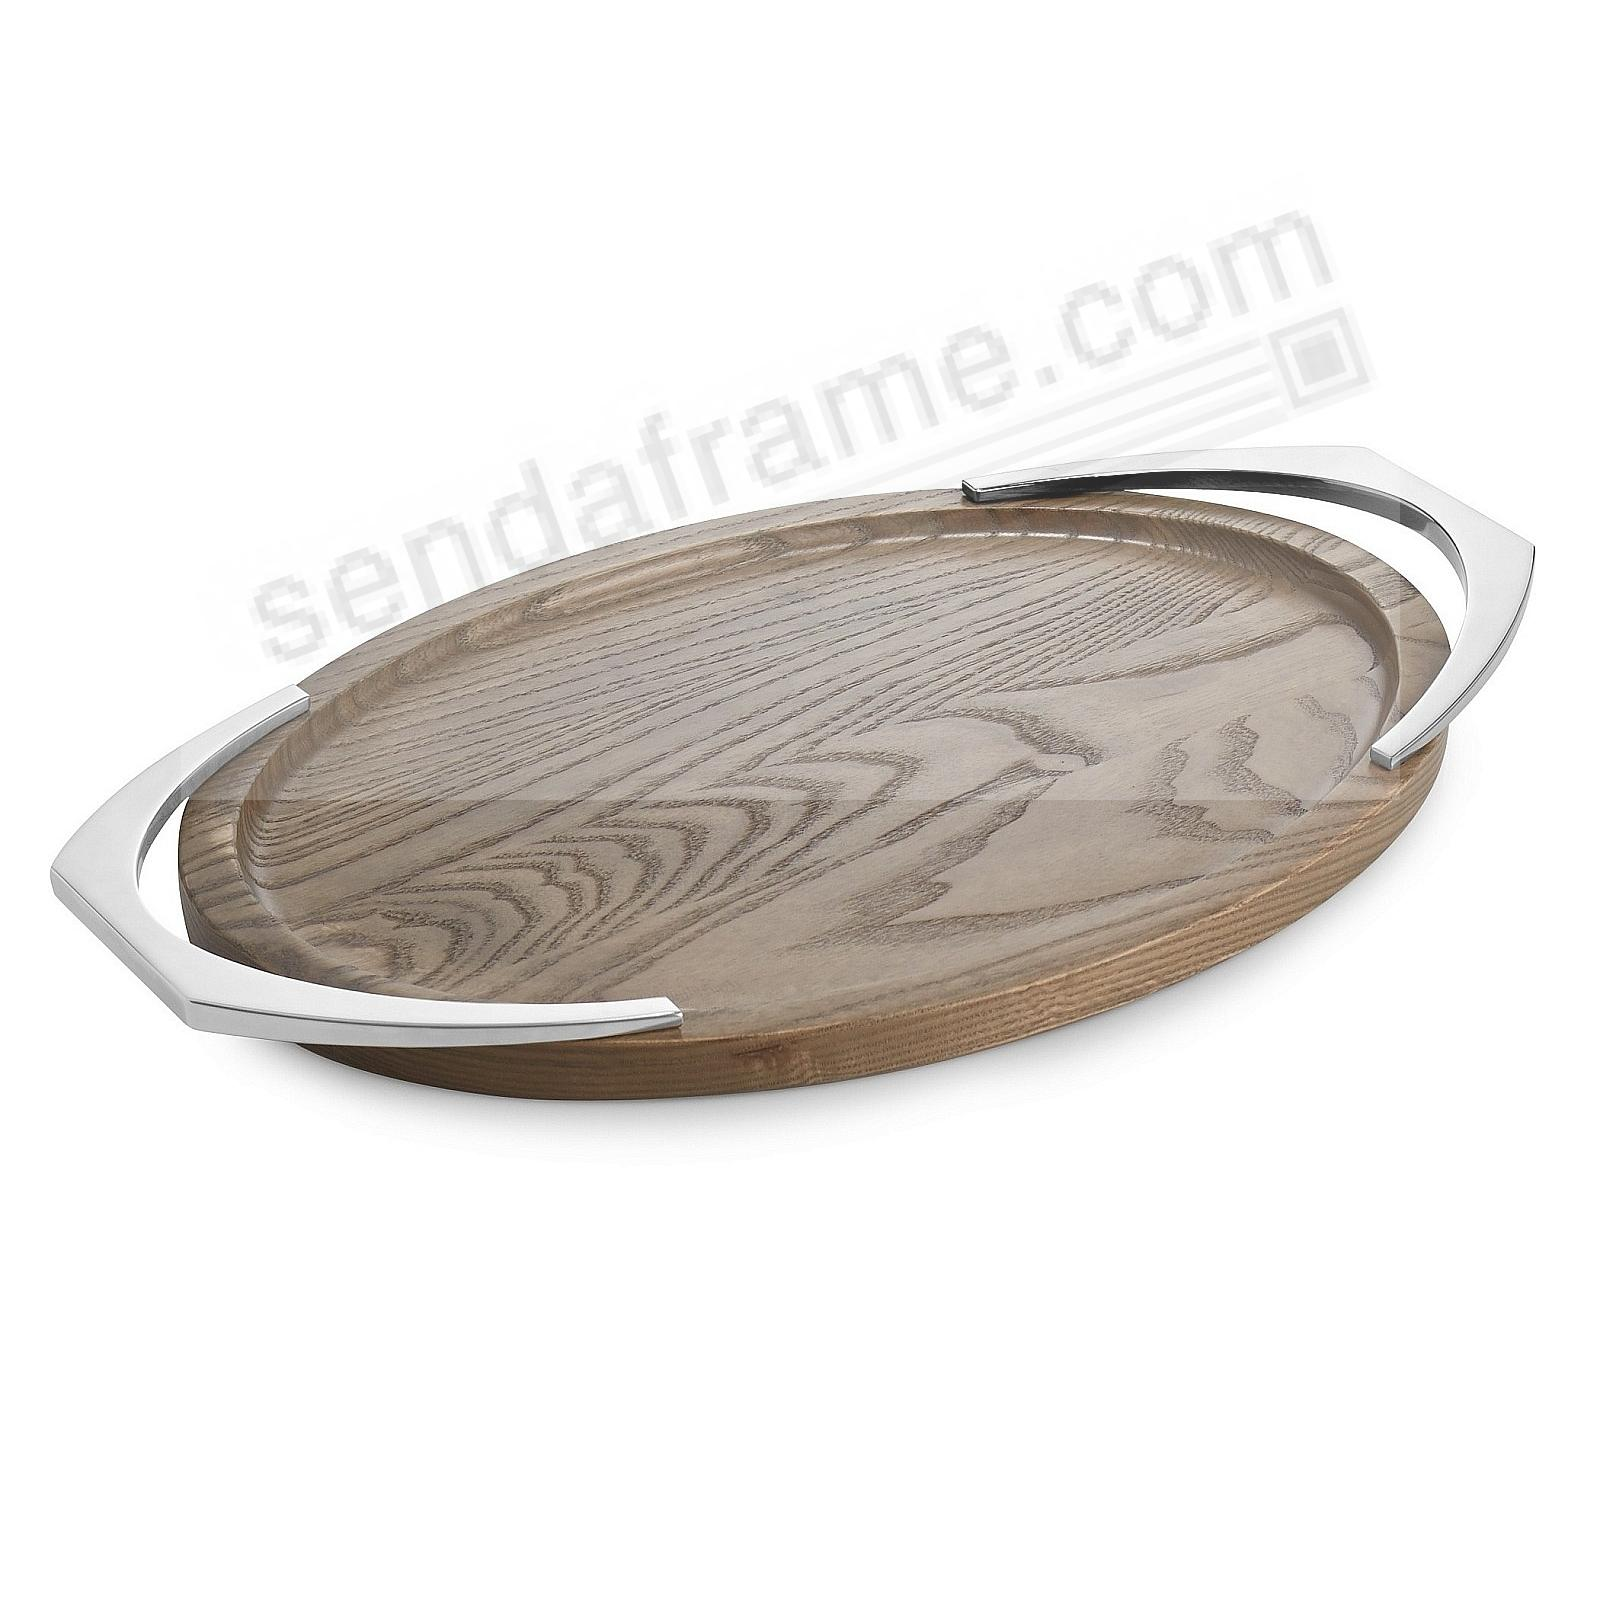 The CABO OVAL HANDLED TRAY by Nambe®